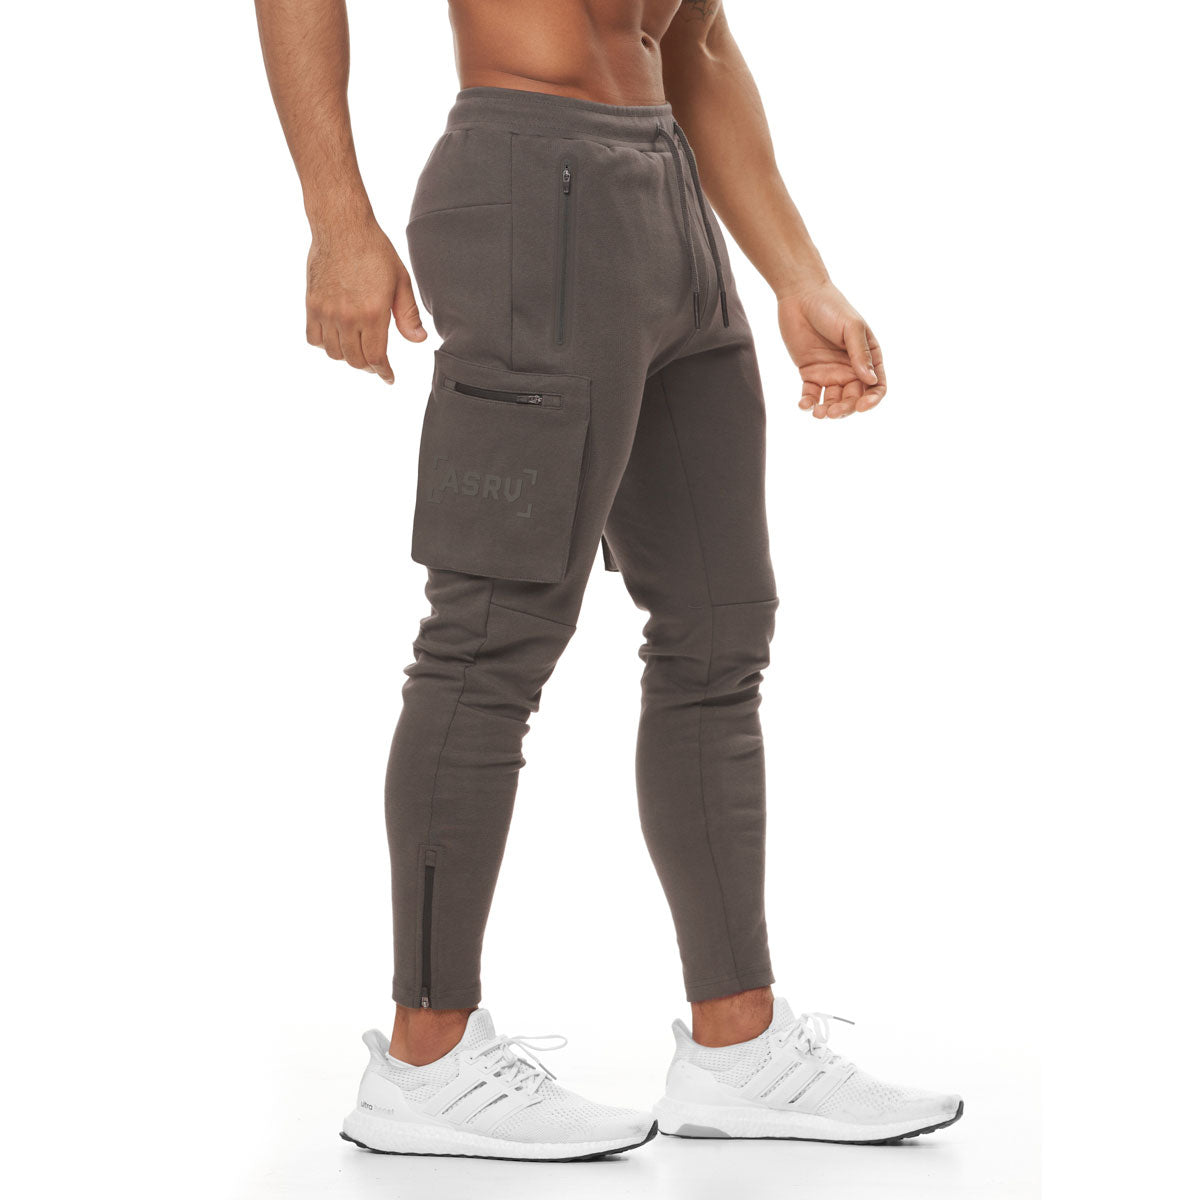 0400. Core Division Cargo Zip Jogger - Deep Taupe